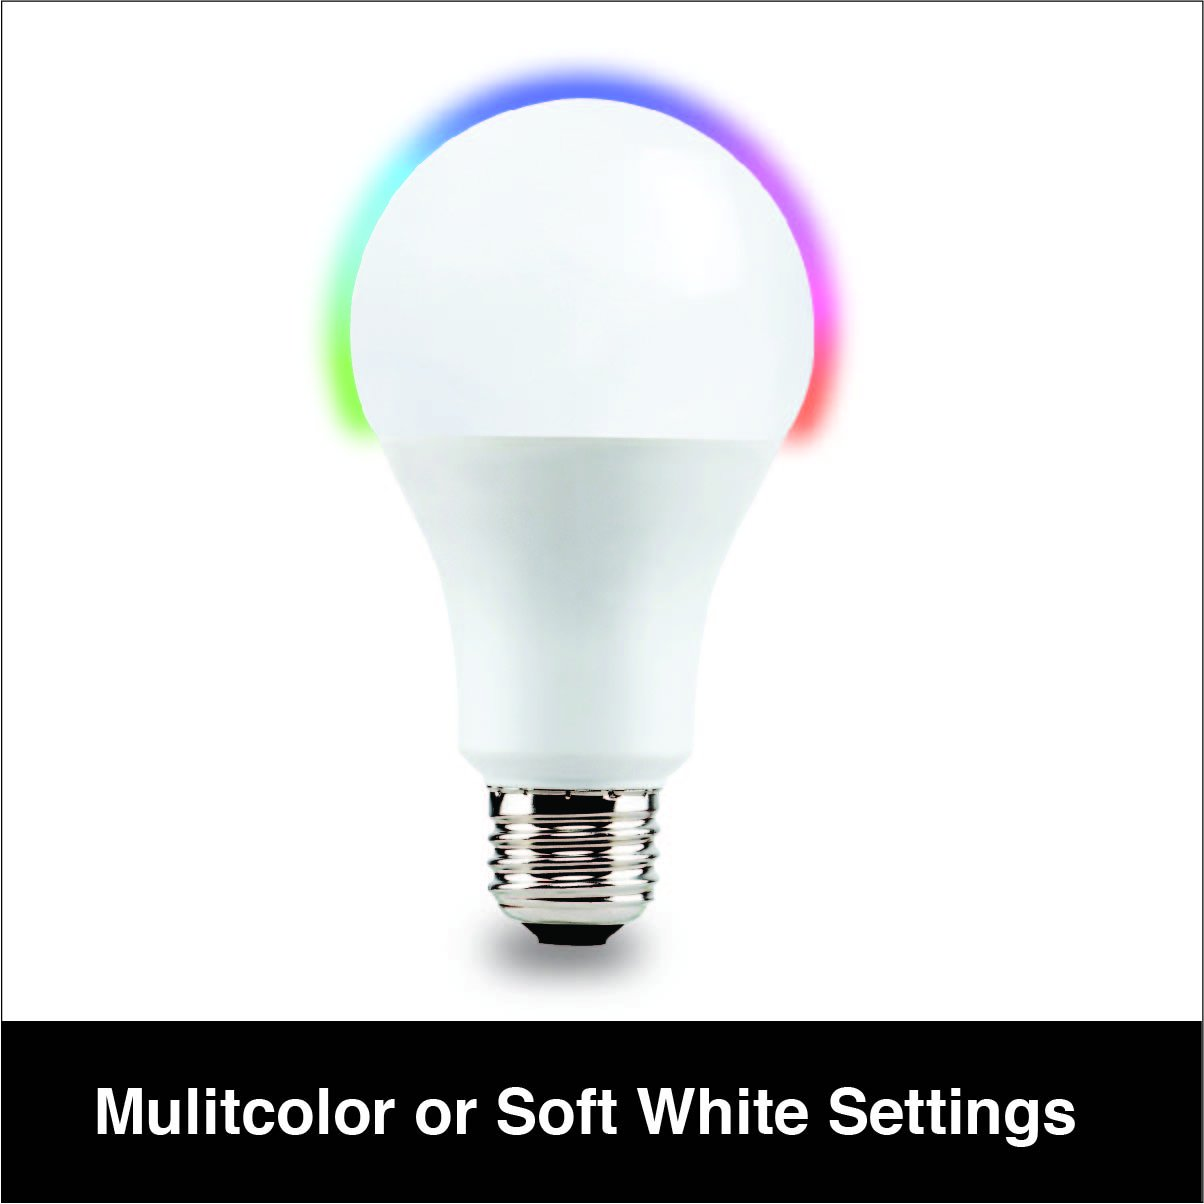 Vivitar LB-60 450 Lumens (40W) Wireless Smart Multi Colored LED Bulb, Wireless Wi-Fi Enabled Smart Bulb, Programmable Timer, Home Automation, Energy Efficient and Eco Friendly, White